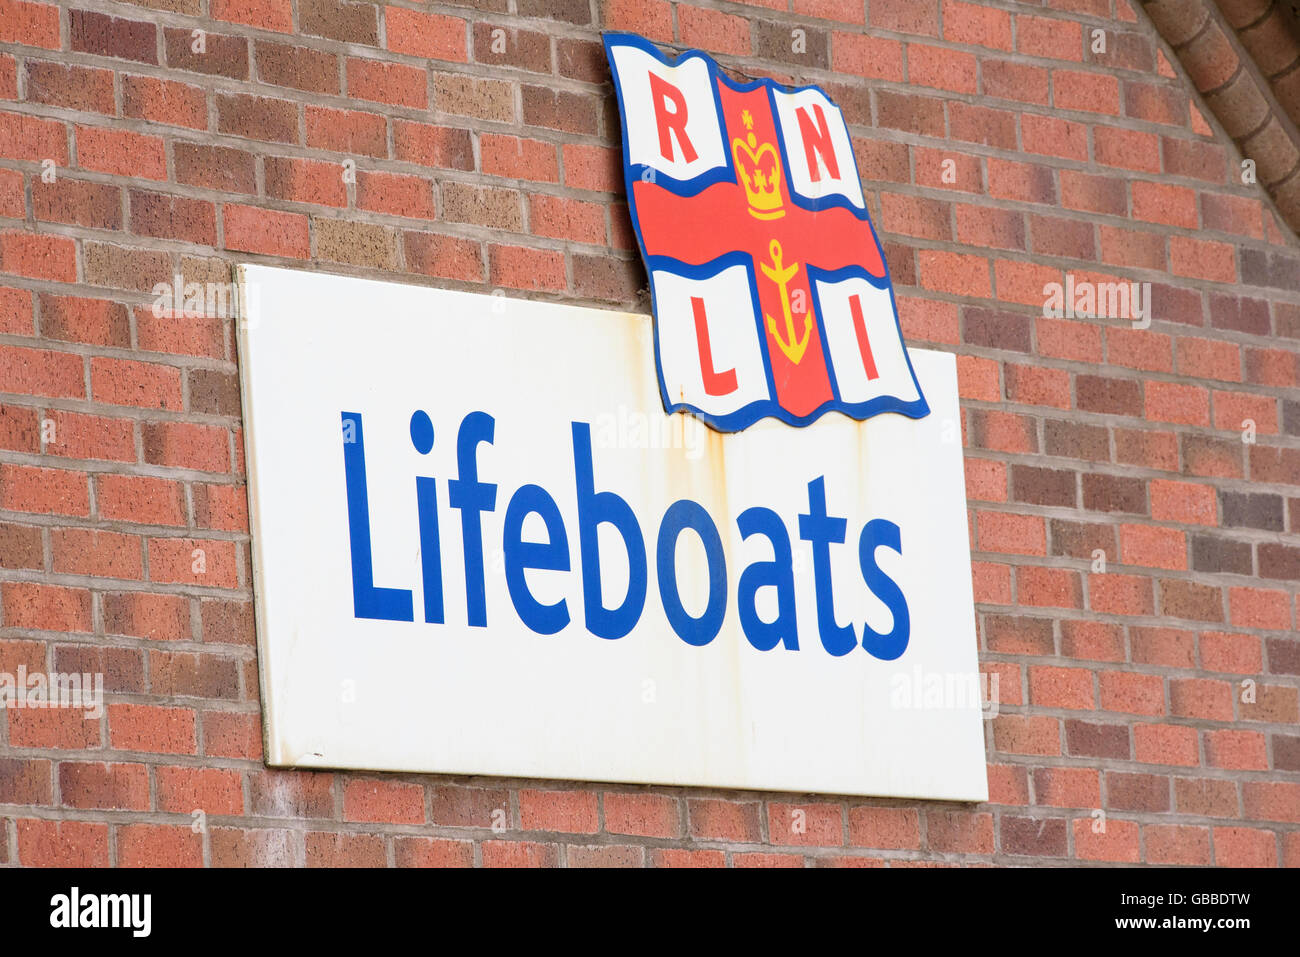 RNLI Lifeboats sign on the wall of the Lifeboat Station on the seafront in Blackpool, Lancashire, UK - Stock Image